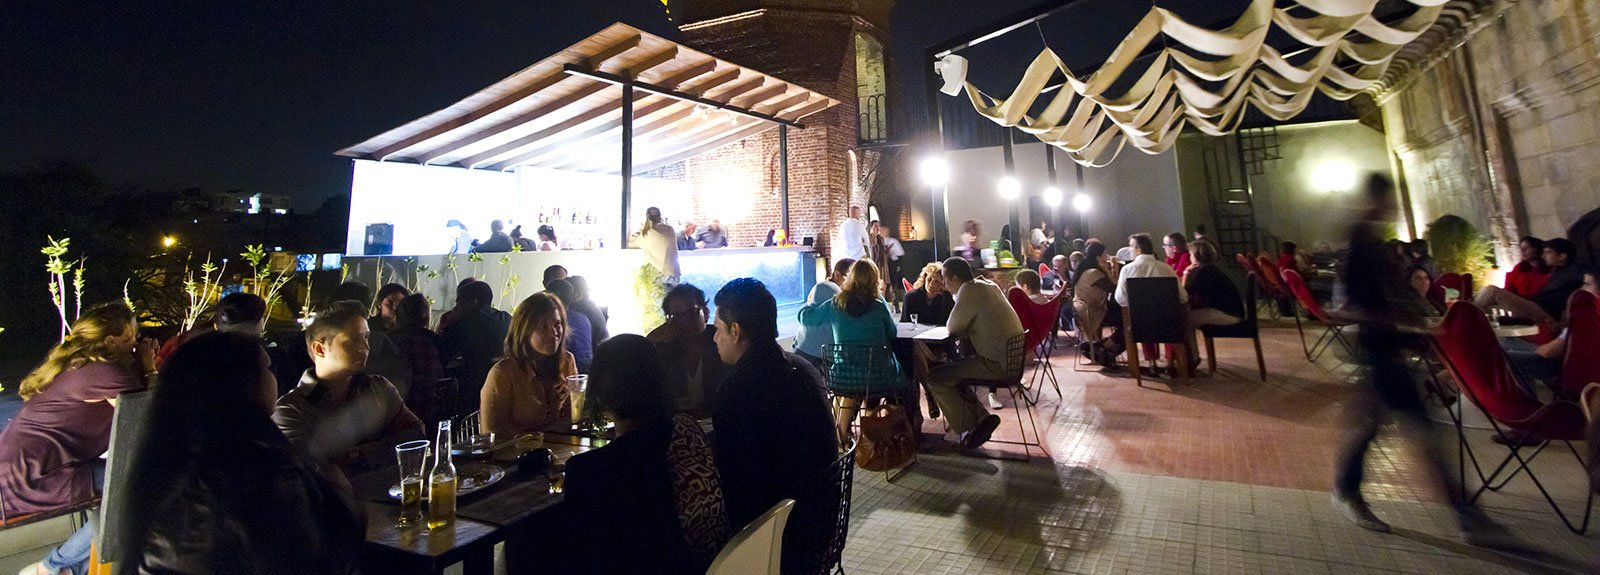 Cocinero retaurant in Vedado, outdoors terrace, people eating and drinking